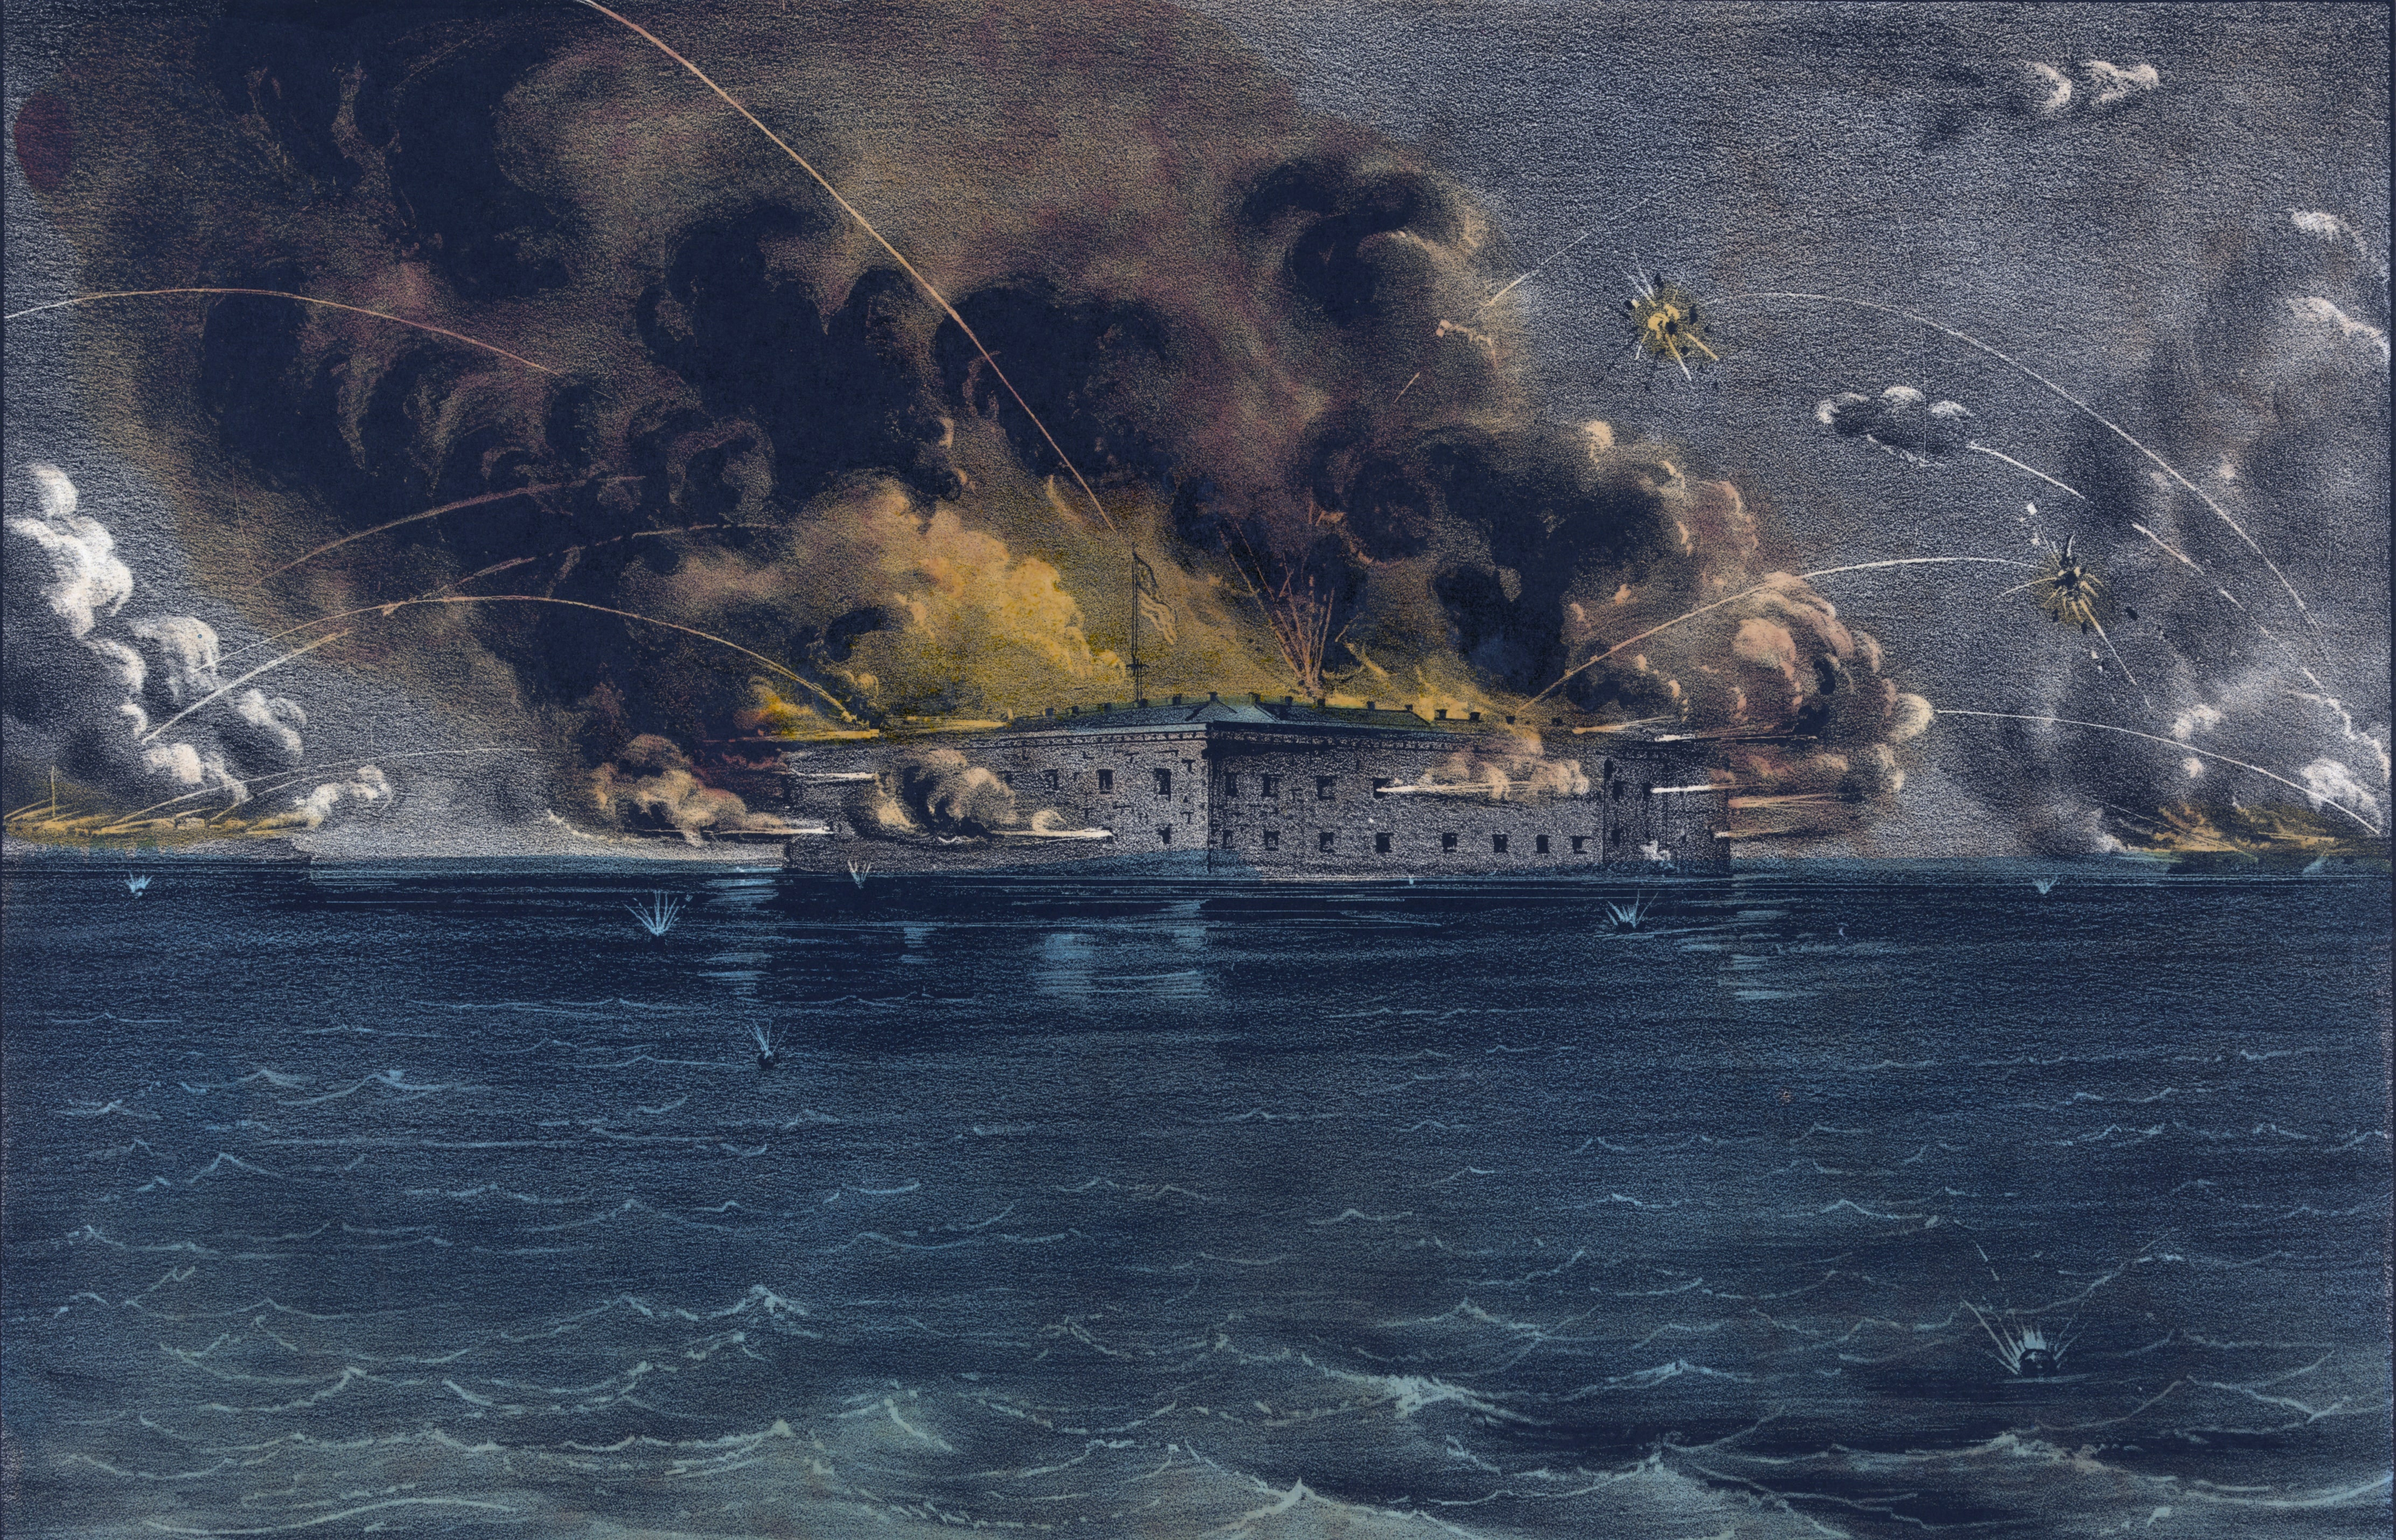 File:Bombardment of Fort Sumter.jpg